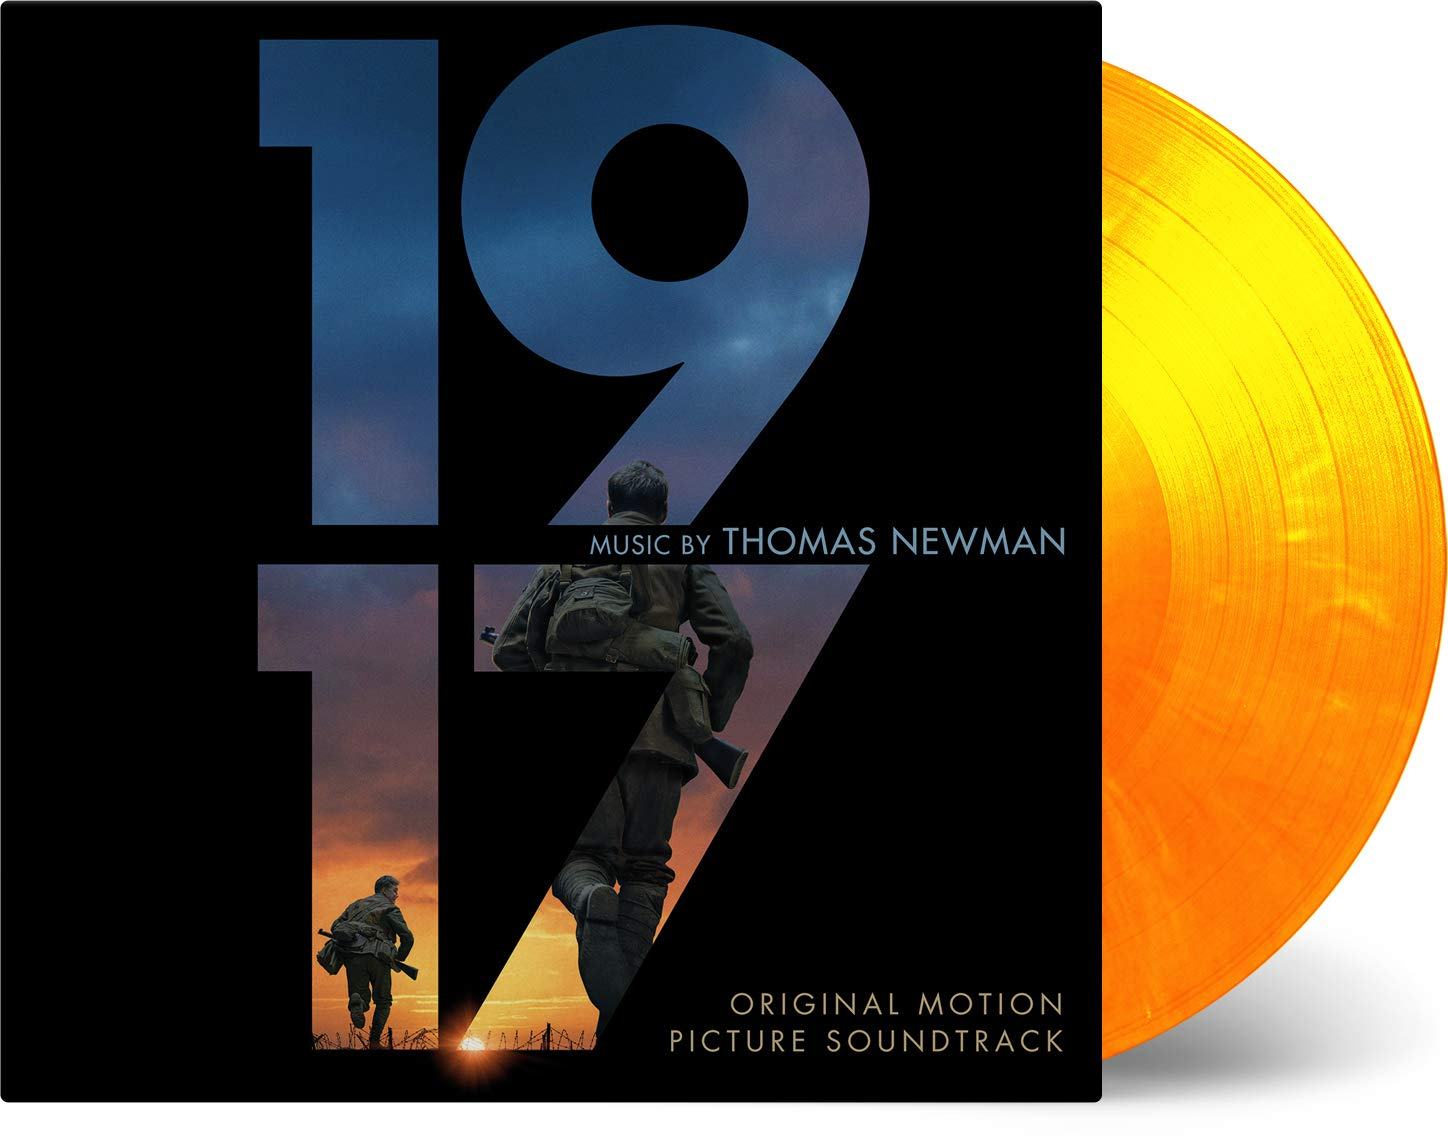 Thomas Newman - 1917 (Original Motion Picture Soundtrack) [Limited Edition Flaming Colored 2LP]